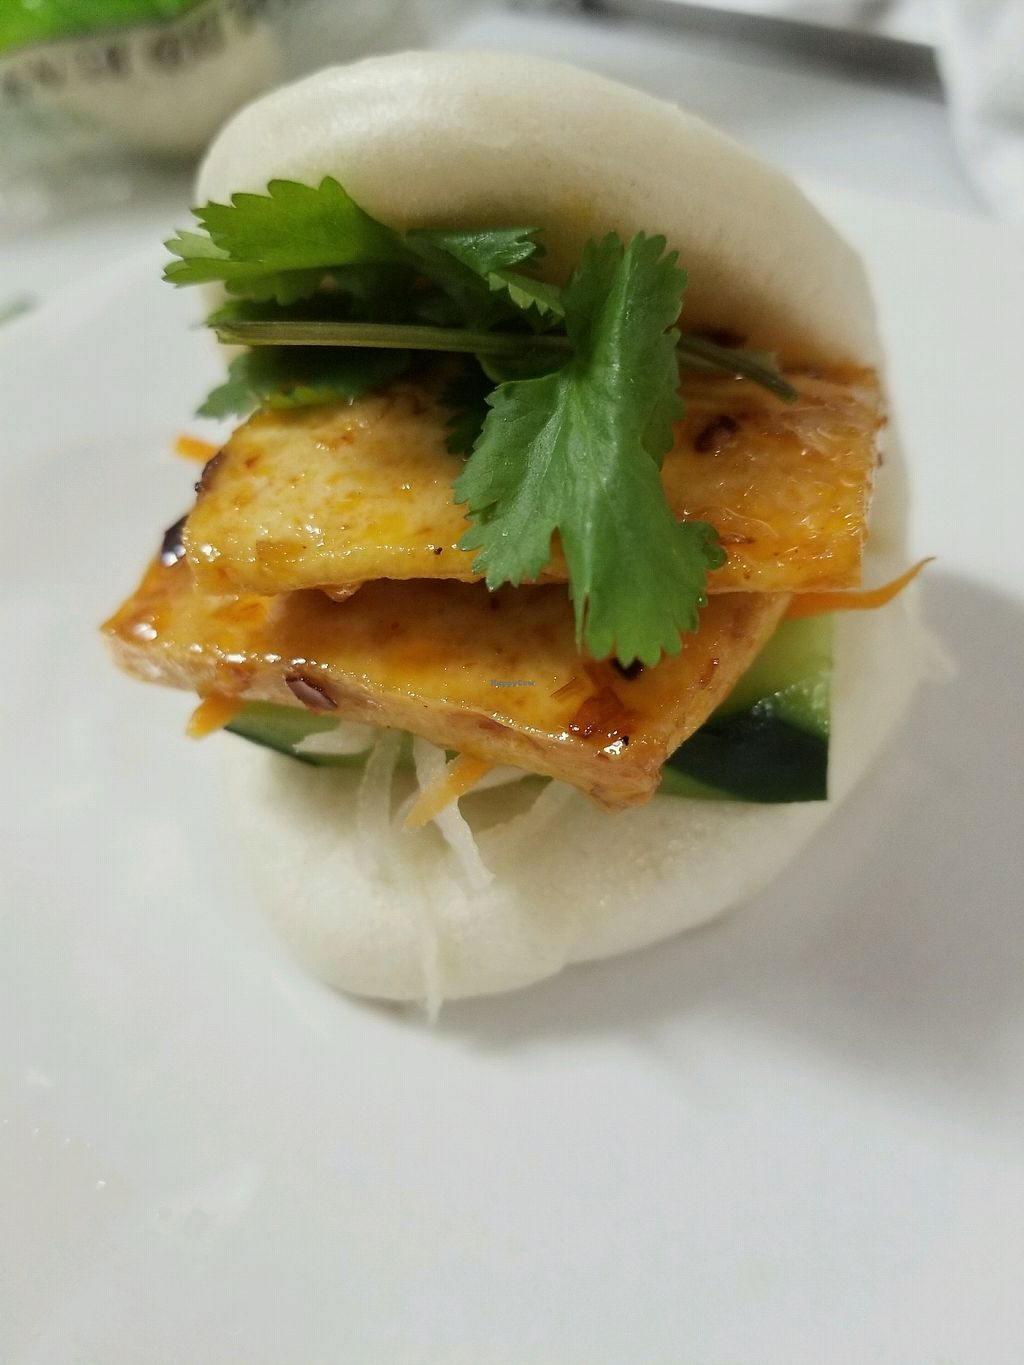 """Photo of Pho Fresh  by <a href=""""/members/profile/daofialu"""">daofialu</a> <br/>spicy tofu taco <br/> August 26, 2017  - <a href='/contact/abuse/image/98567/297587'>Report</a>"""